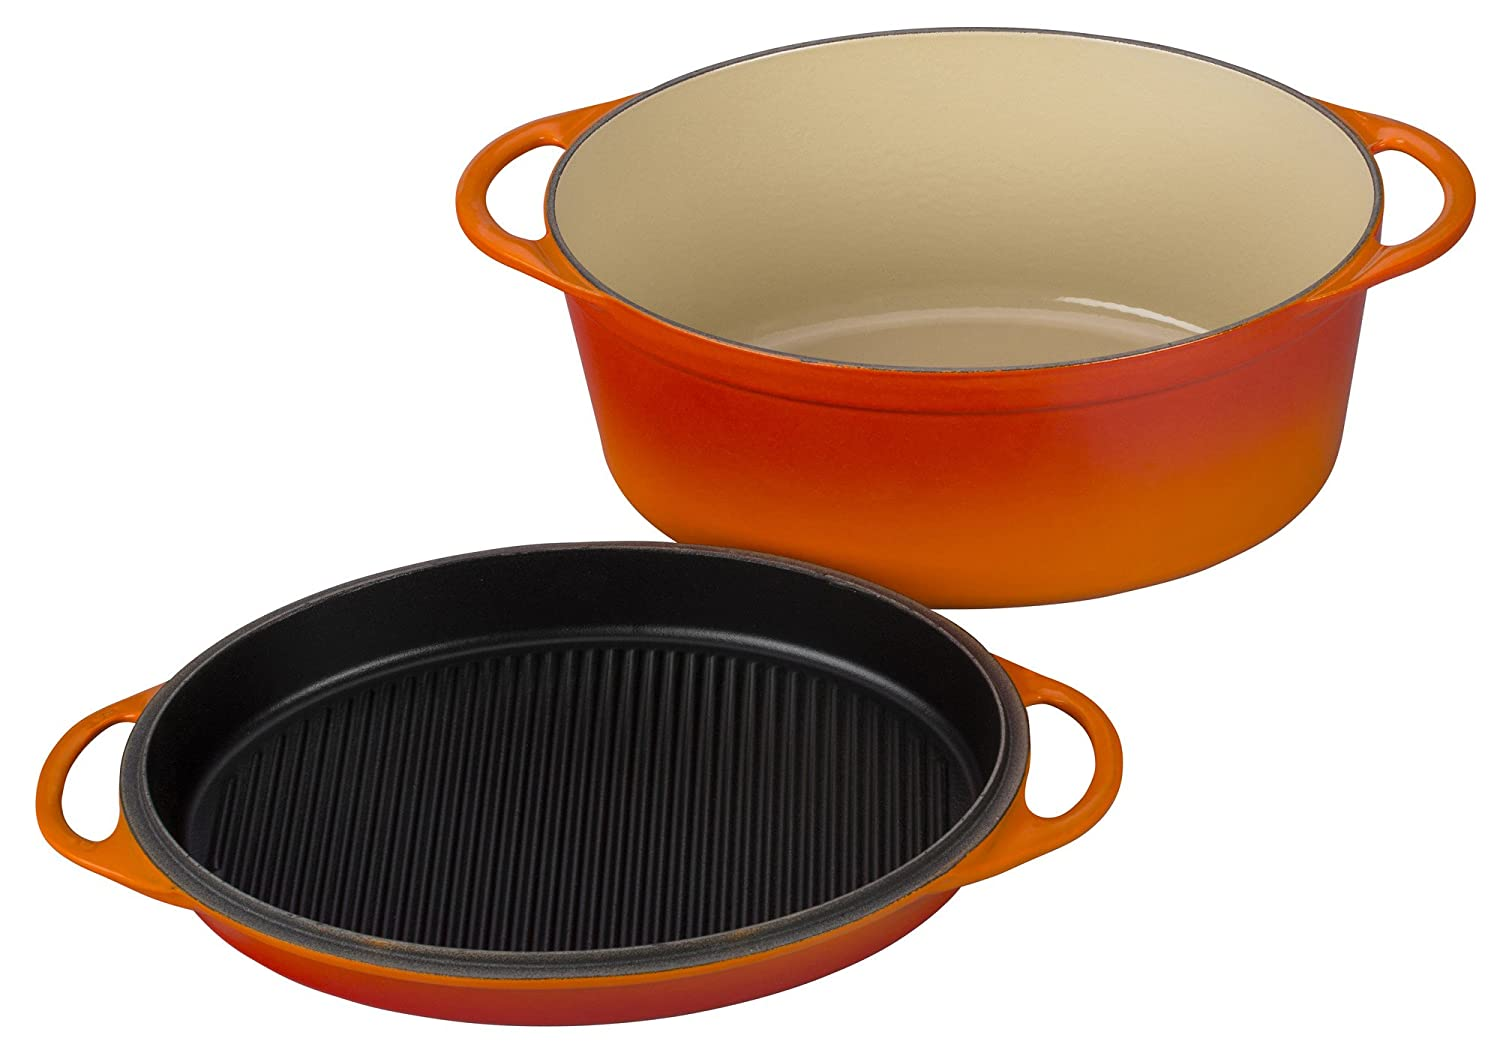 Le Creuset of America Cast Iron Cookware Oval Dutch Oven, 7.75Qt, Flame